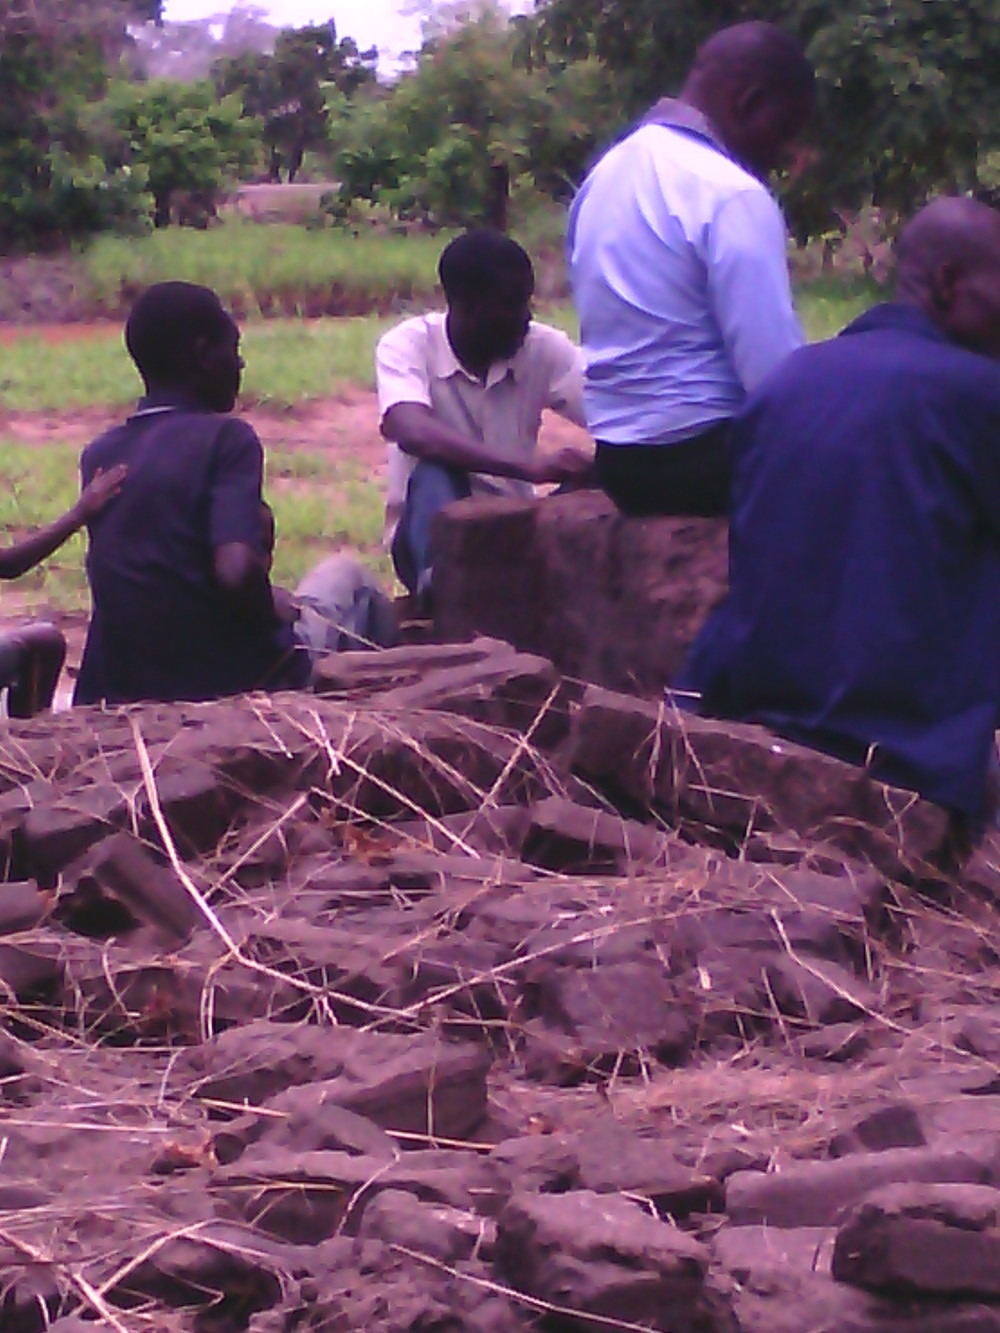 Mr. Mbota (in purple), sitting with the family on what USED to be the families home, now completely destroyed by the flood.